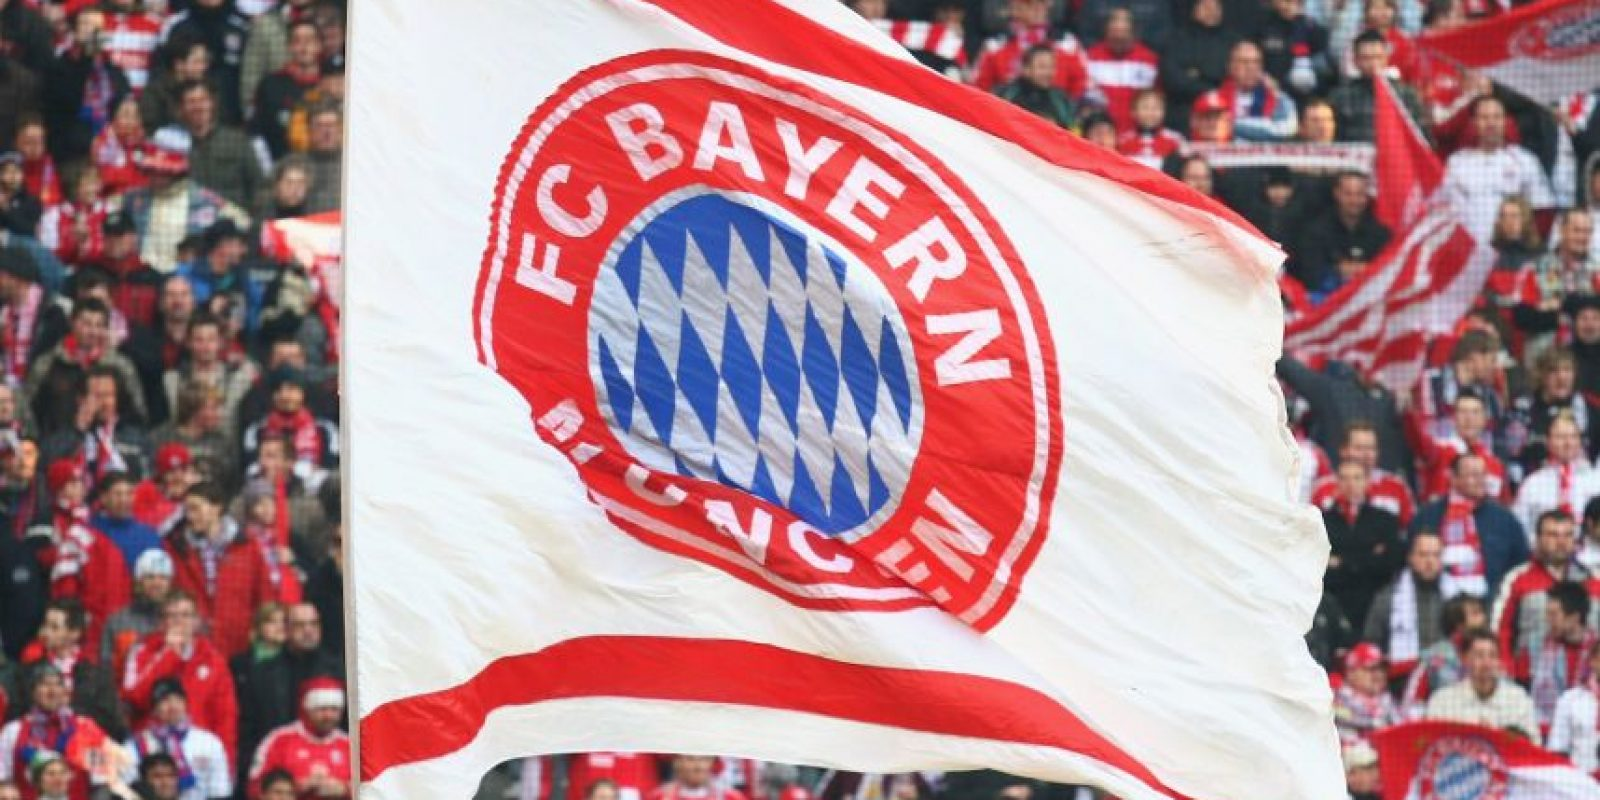 9. Bayern Munich Foto: Getty Images